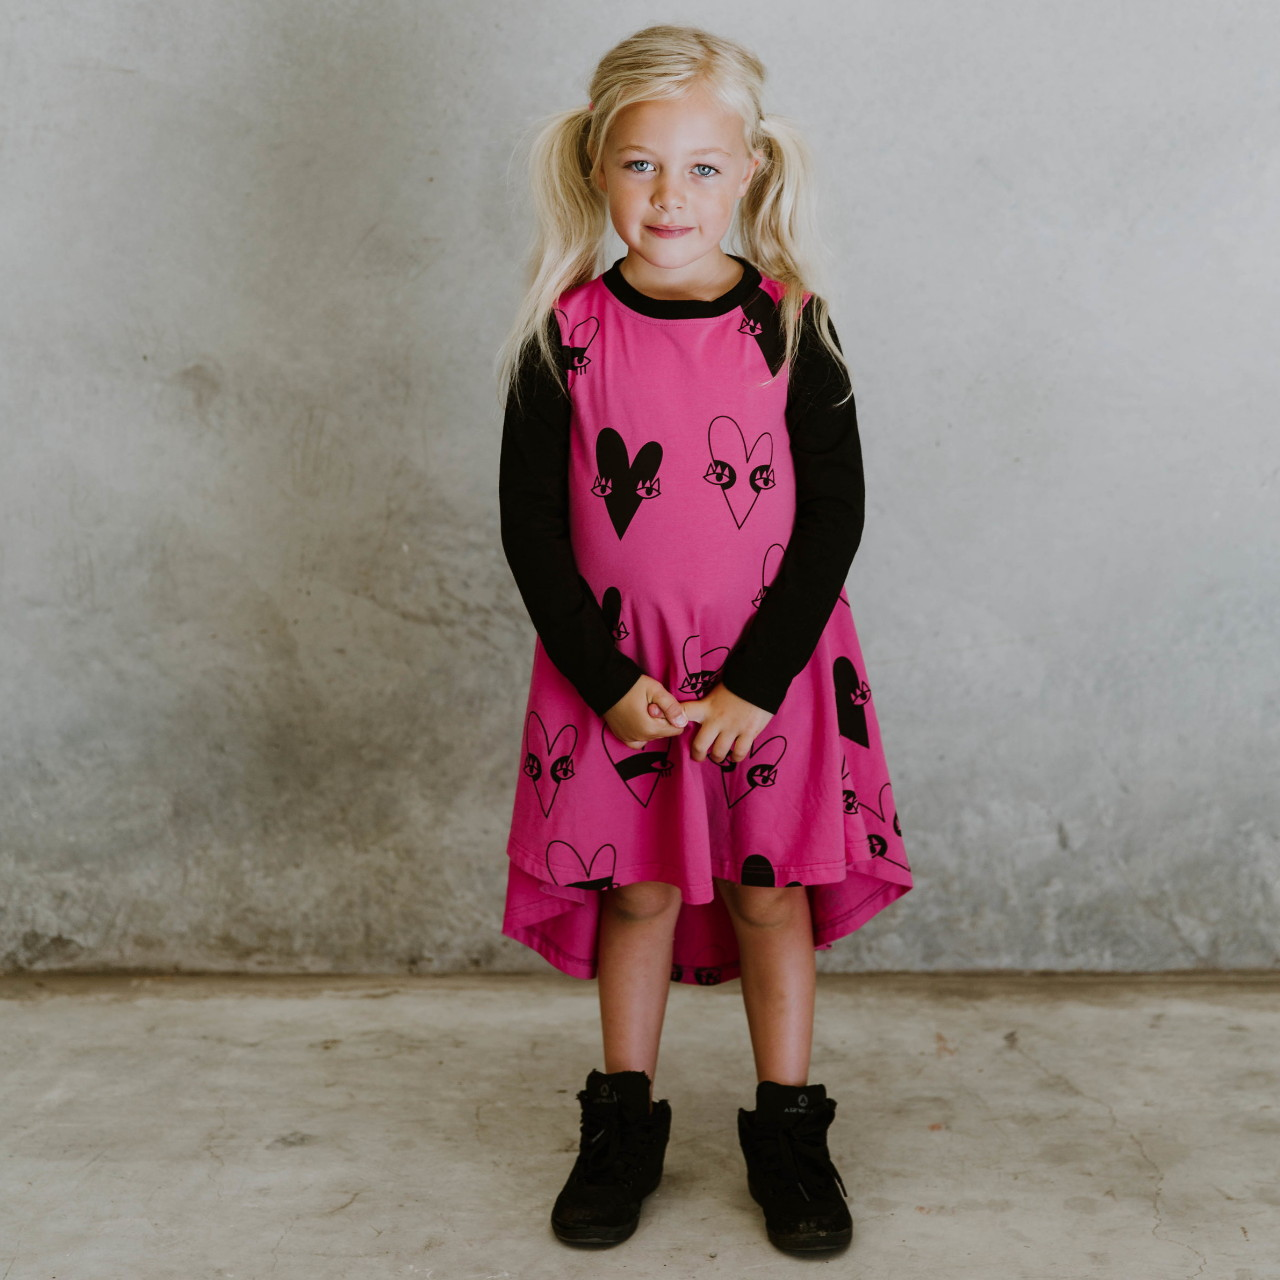 Heart Dress - Hot Pink & Black